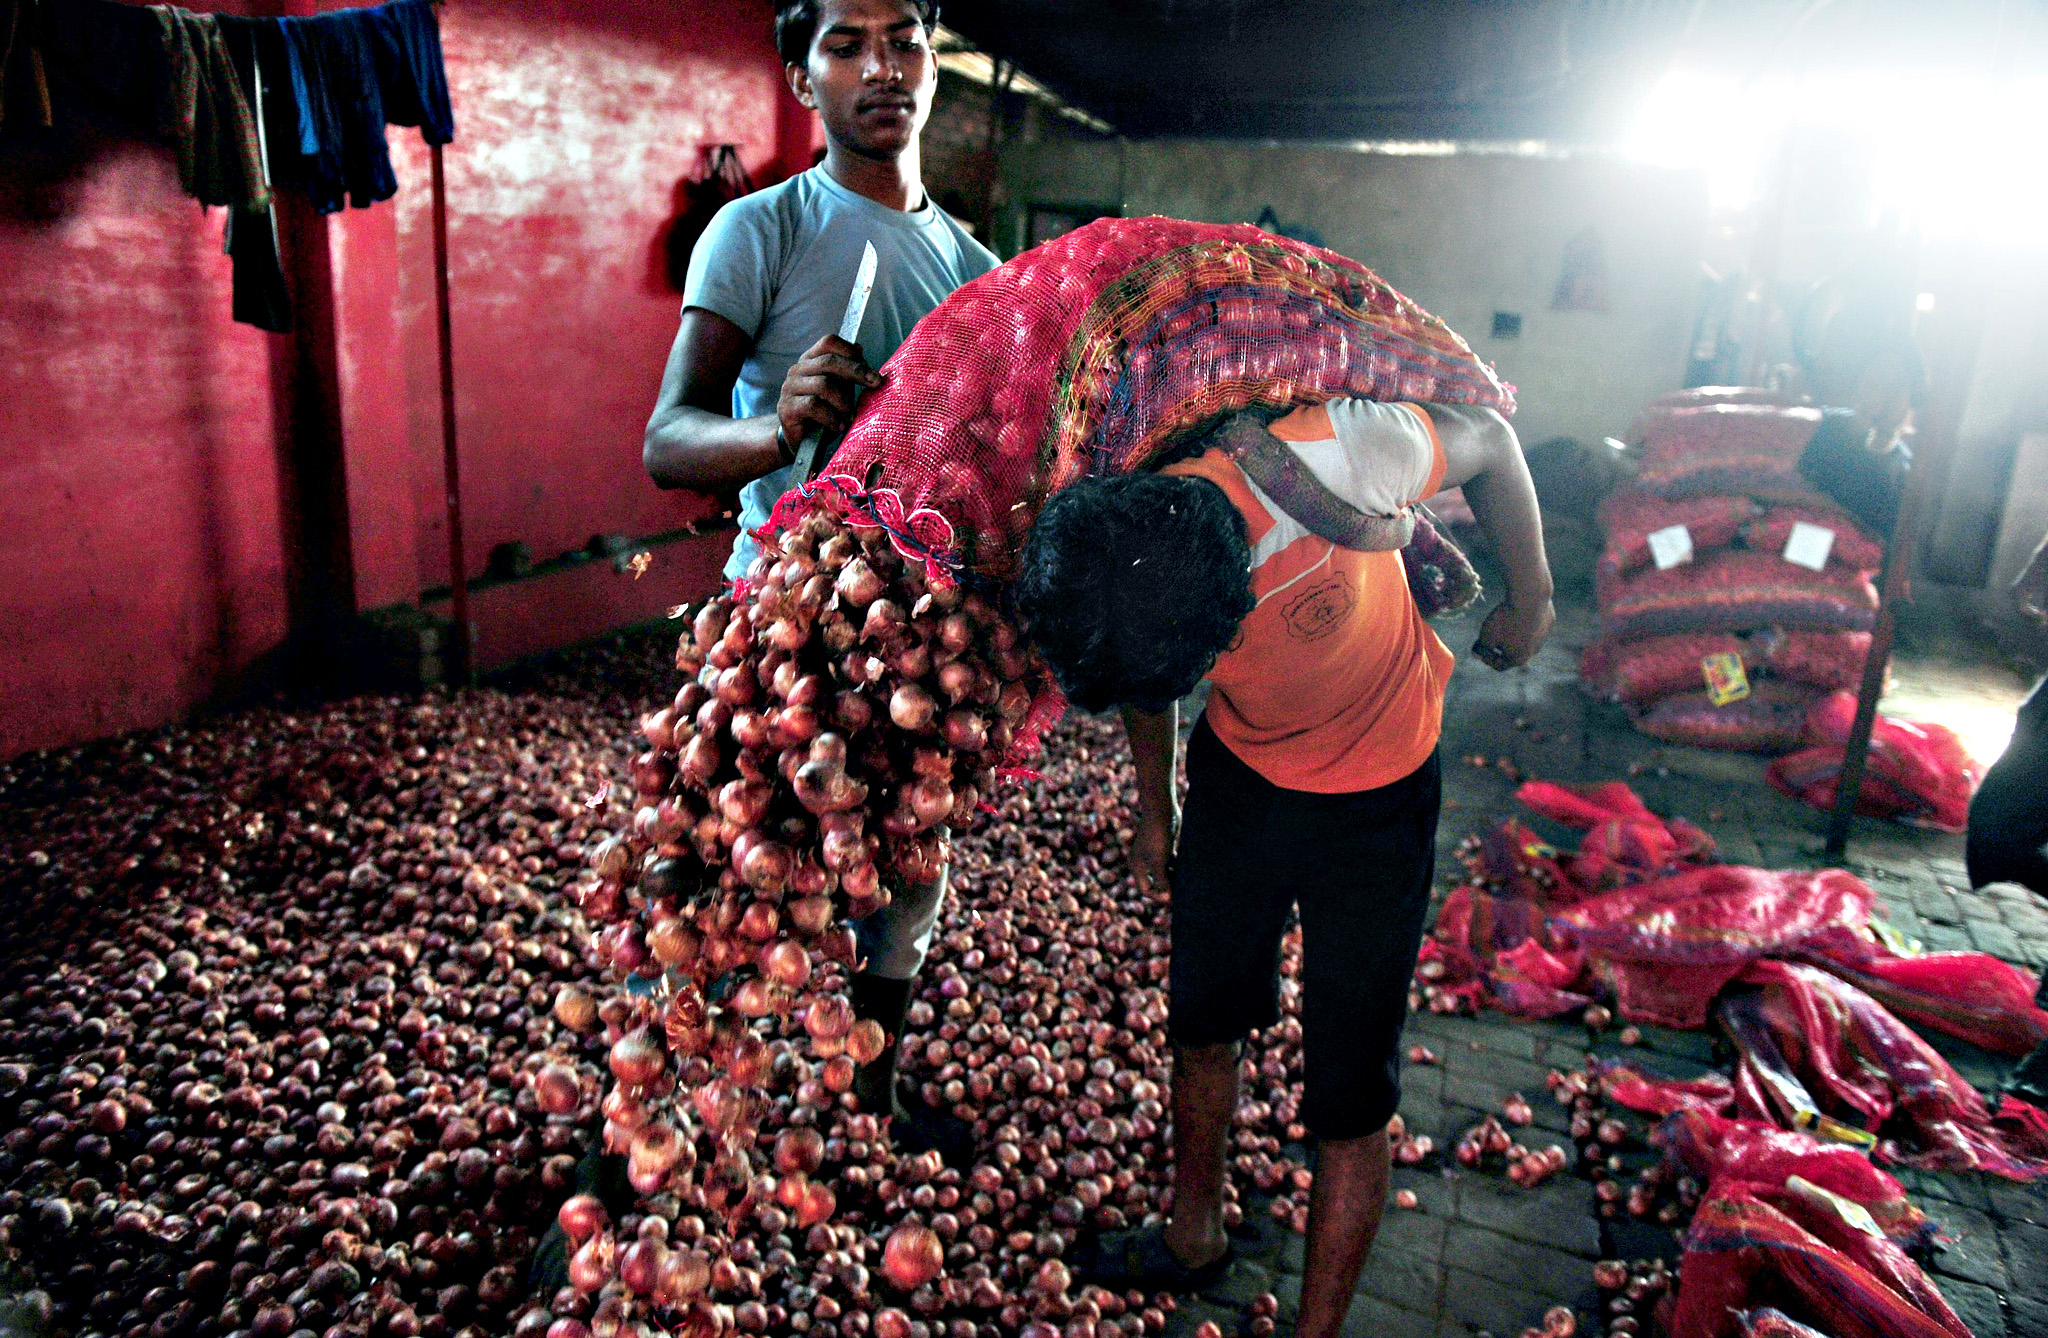 Indian labourers unload onions for sorting at Mundera wholesale market in Allahabad on September 9, 2015